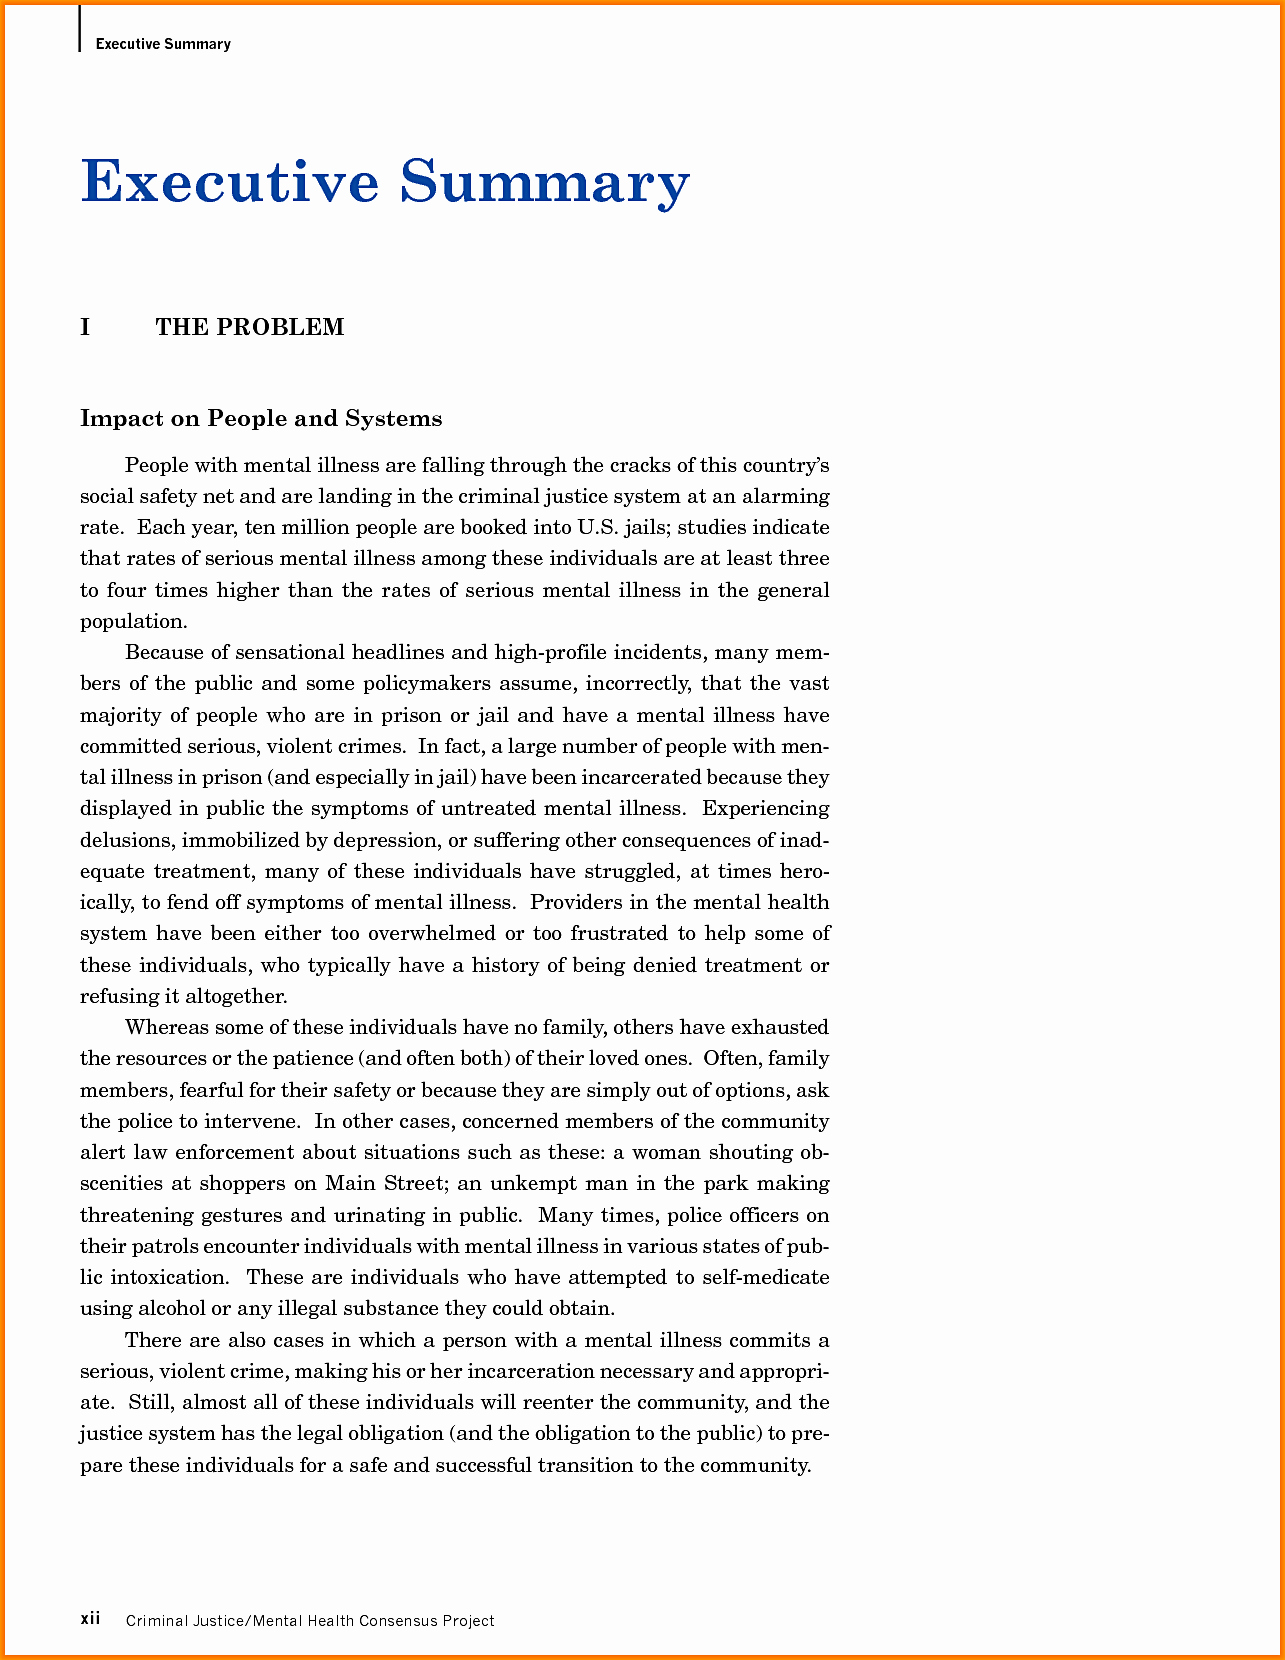 Executive Summary Financial Report Template Fresh 6 Executive Summary Real Life Examples Financial Statement